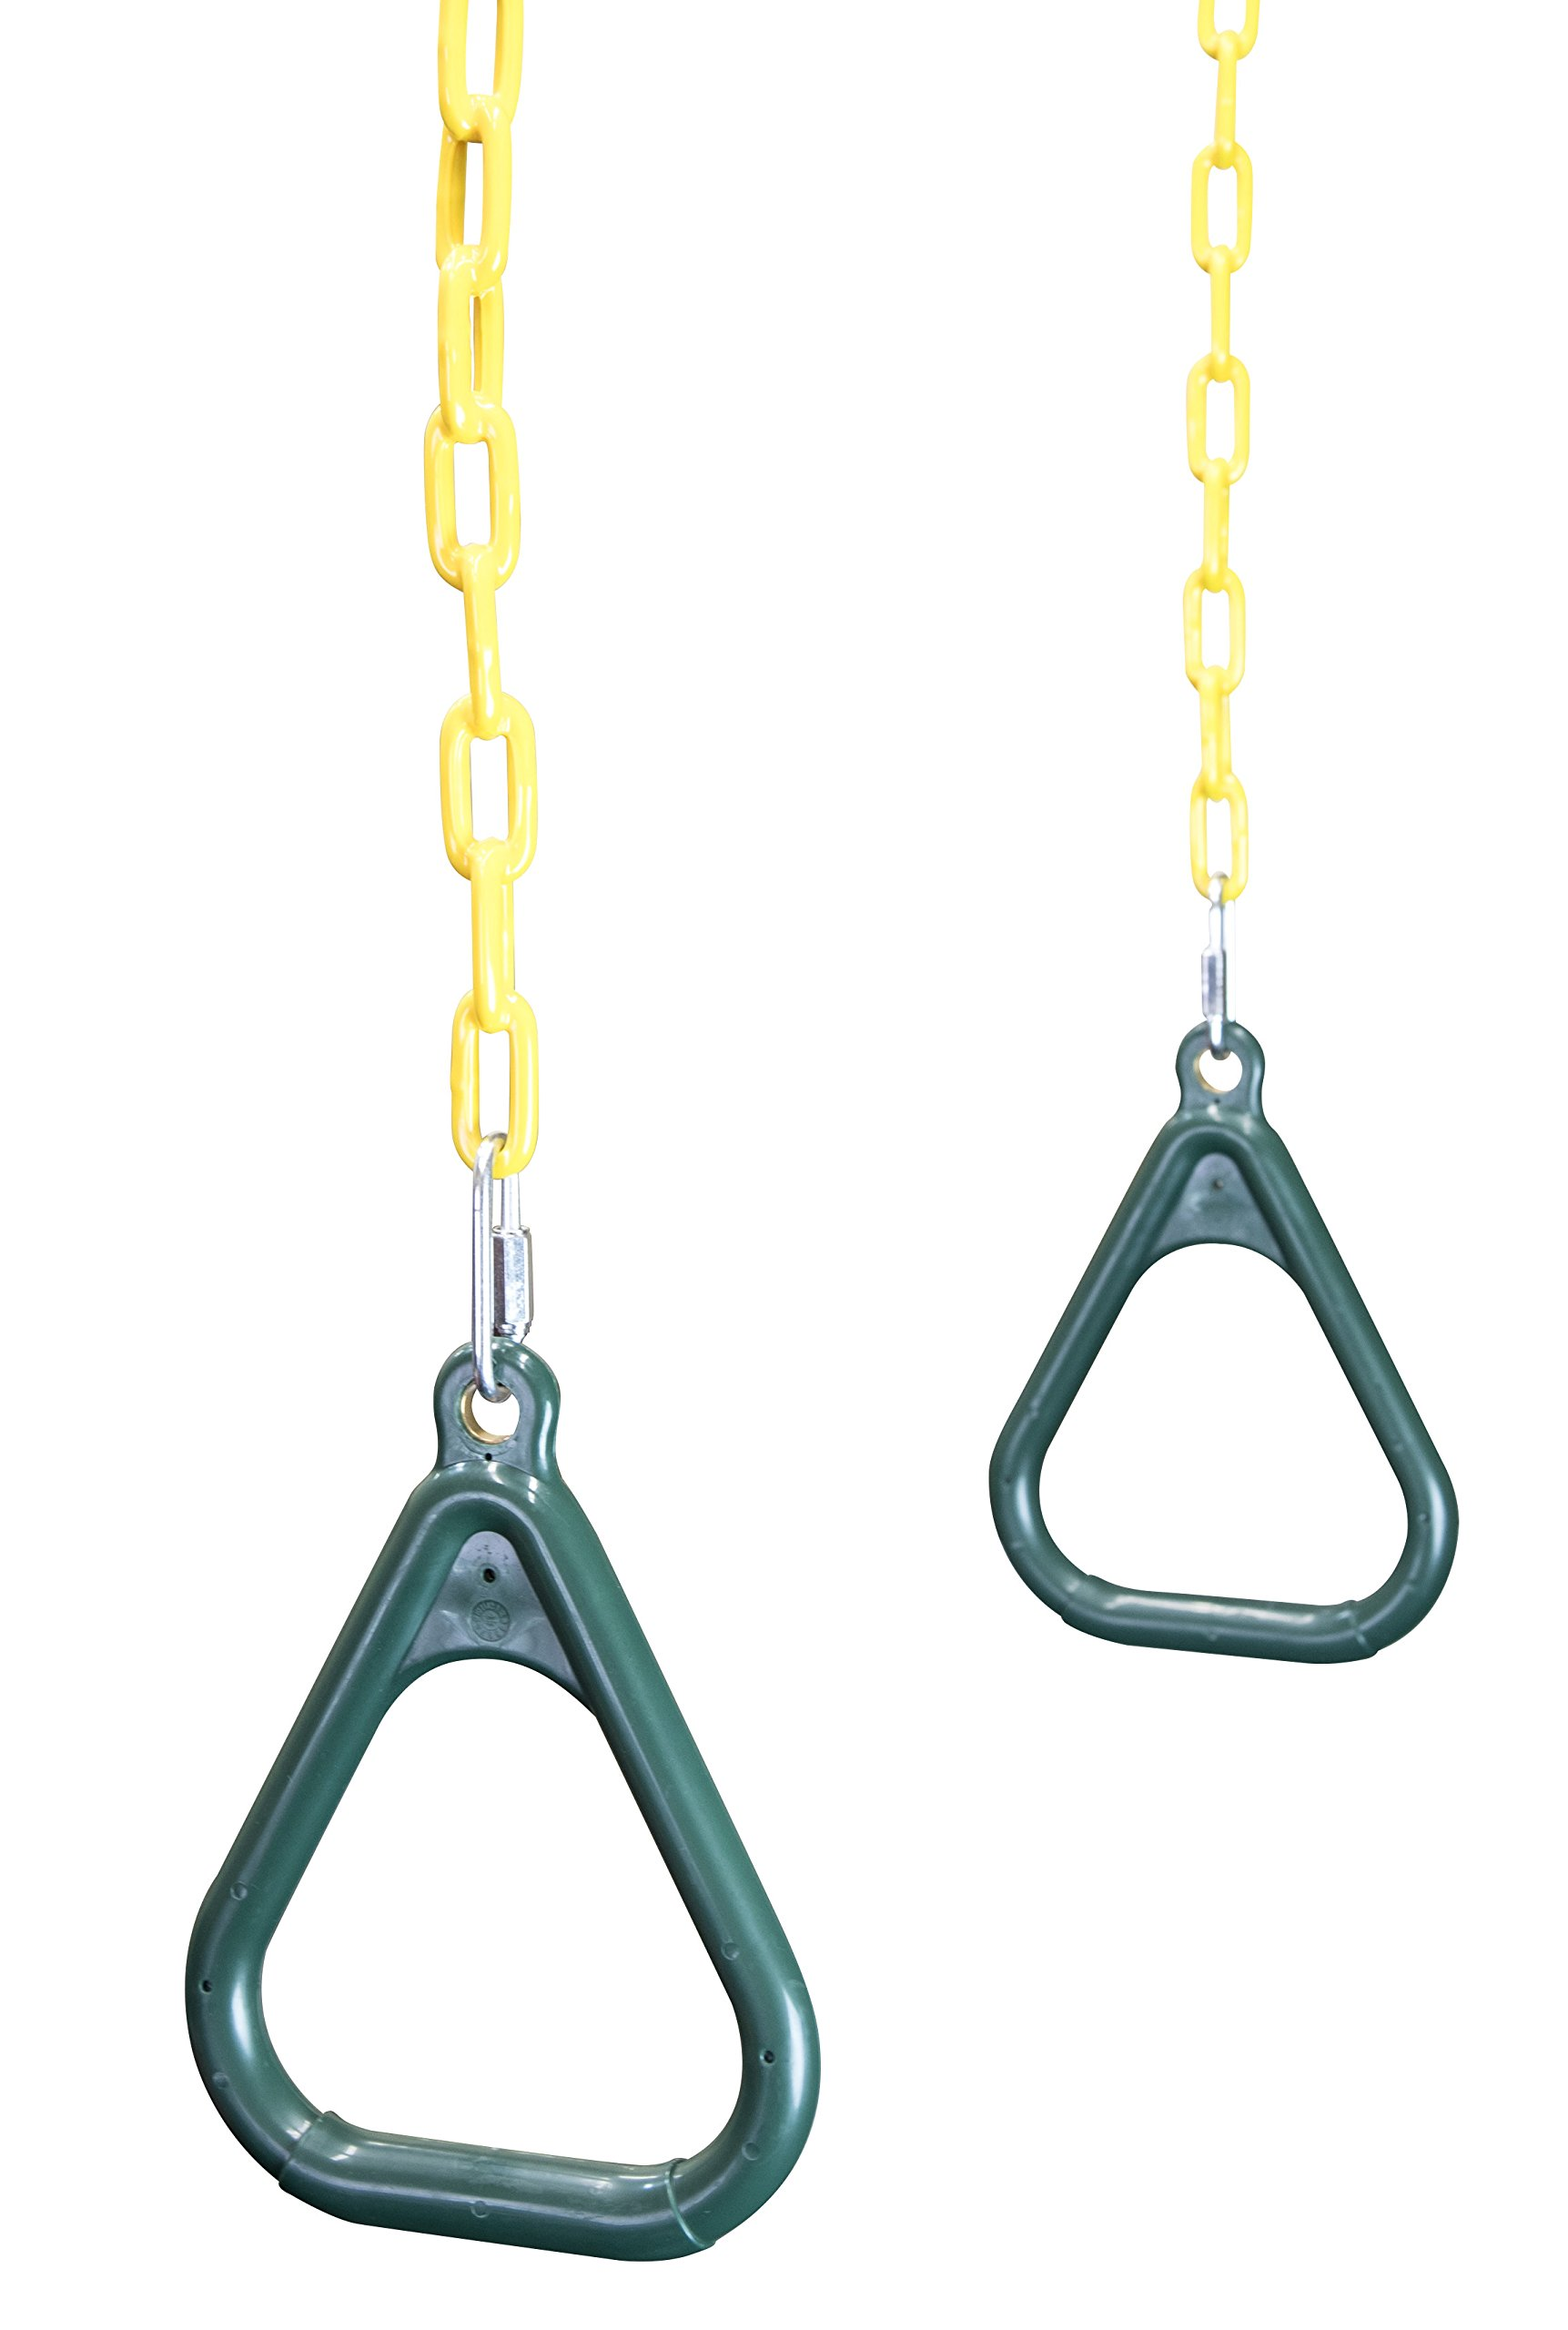 with by or bulk all stanchions chains the sizes plastic red foot chain